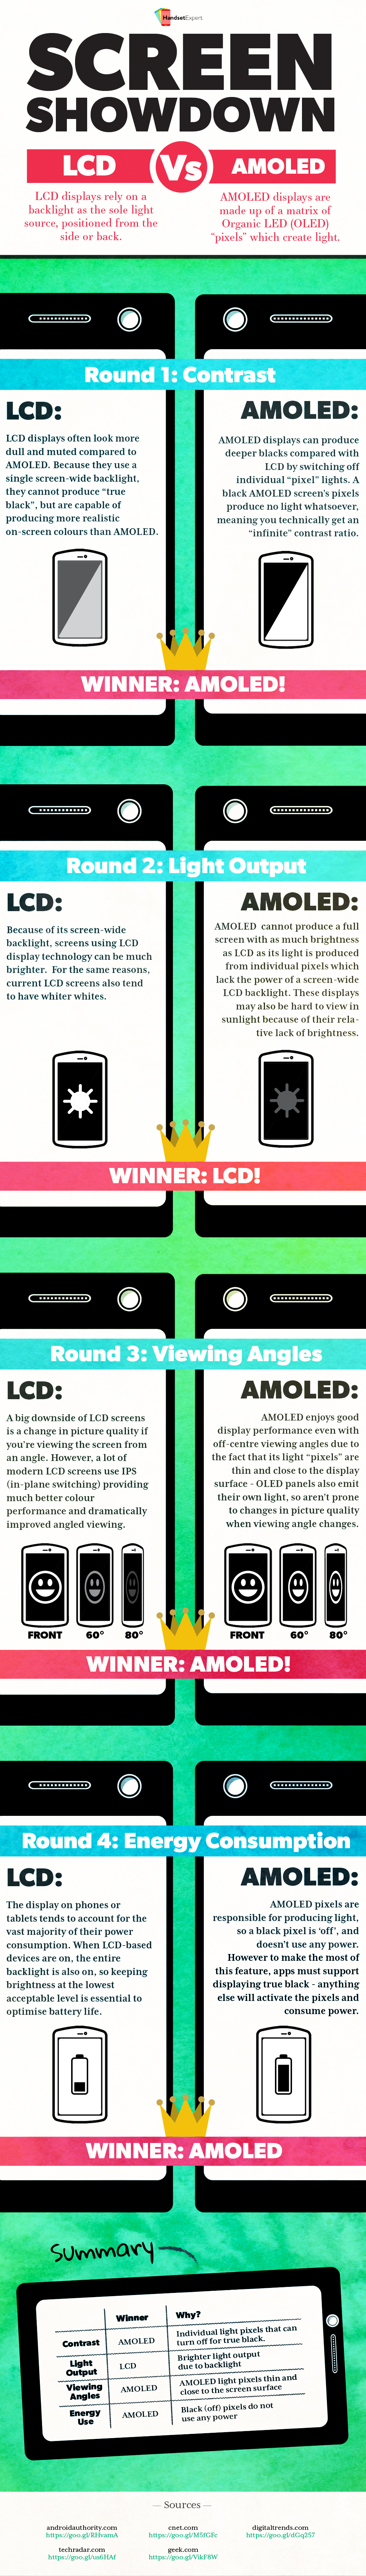 lcd or amoled lighting infographic